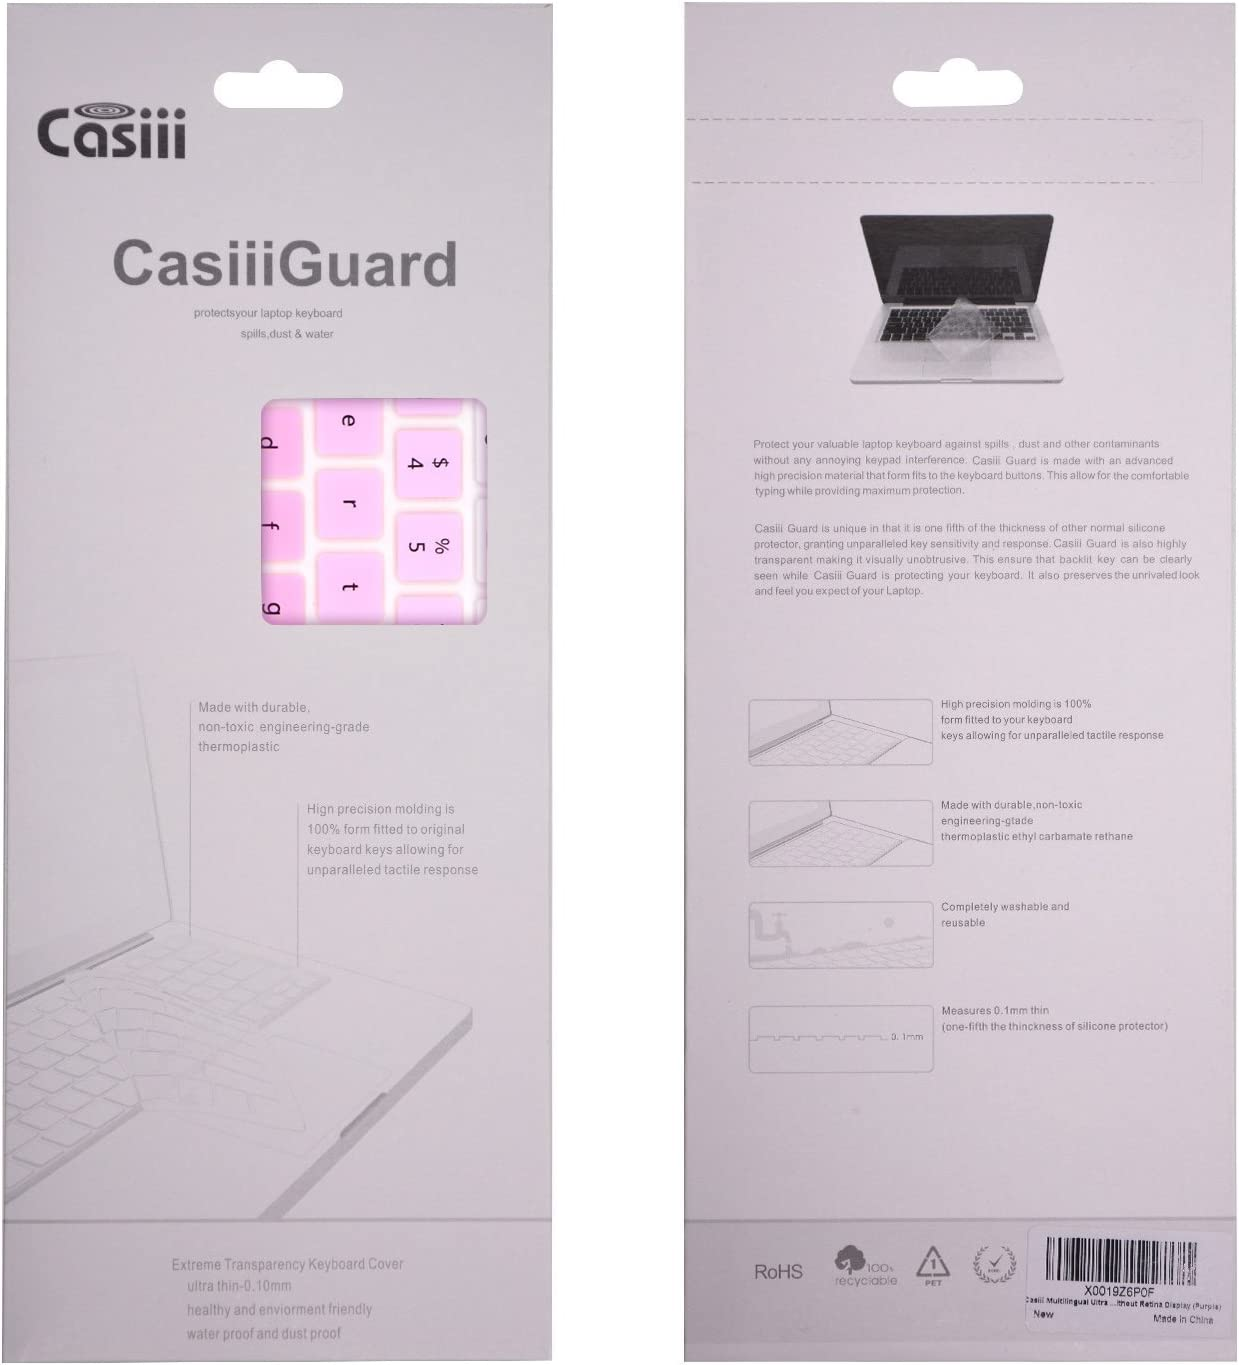 Casiii Best Acer Chromebook Keyboard Cover Ergonomic Silicone Covers Back to School Buy 1 Get 1 Cool Colors Fits Acer Chromebooks 11.6 Ombre Pink Durable Eco-Friendly /& Hygienic